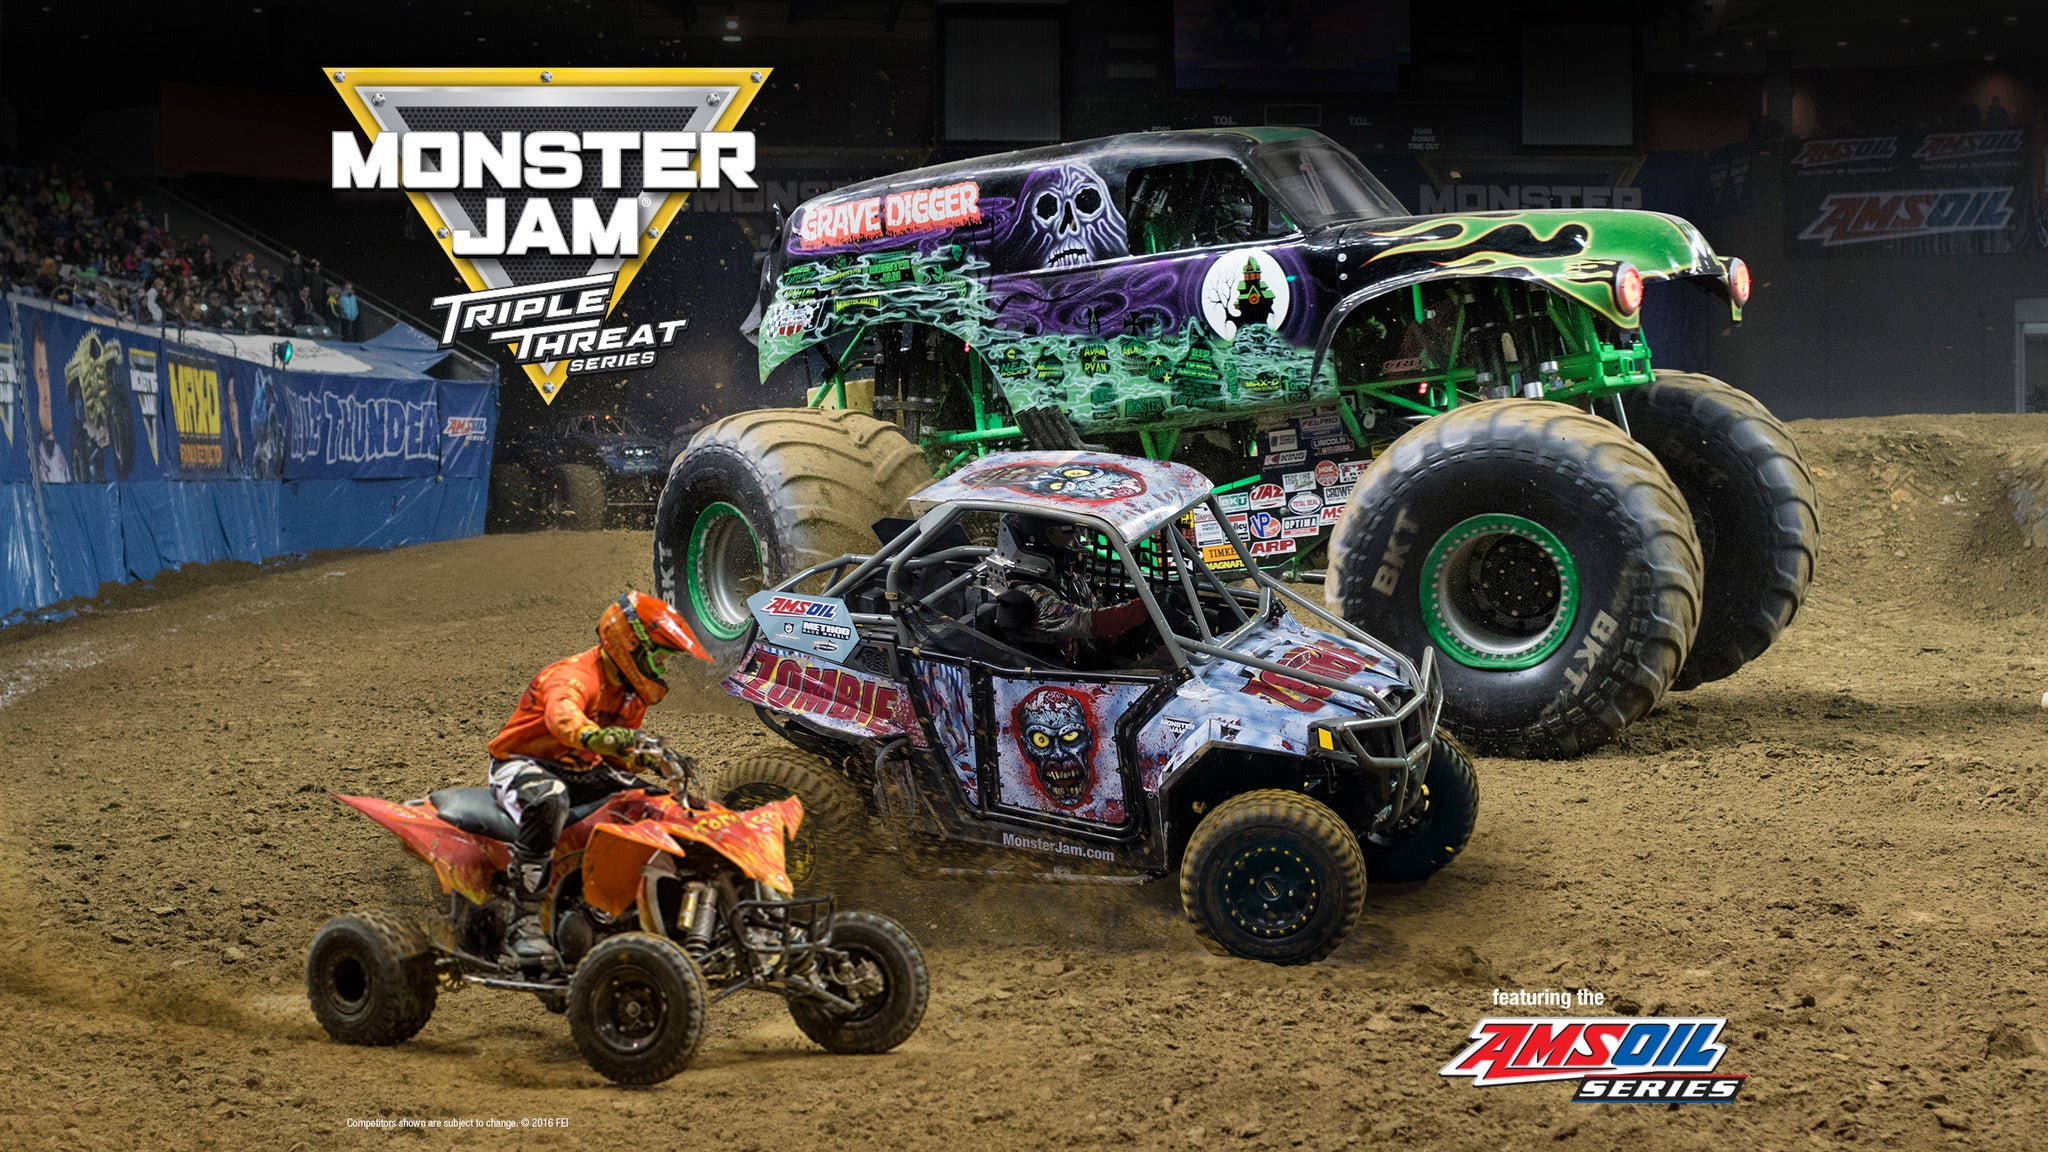 Monster Jam Triple Threat Series featuring the AMSOIL Series - Tucson, AZ 85701